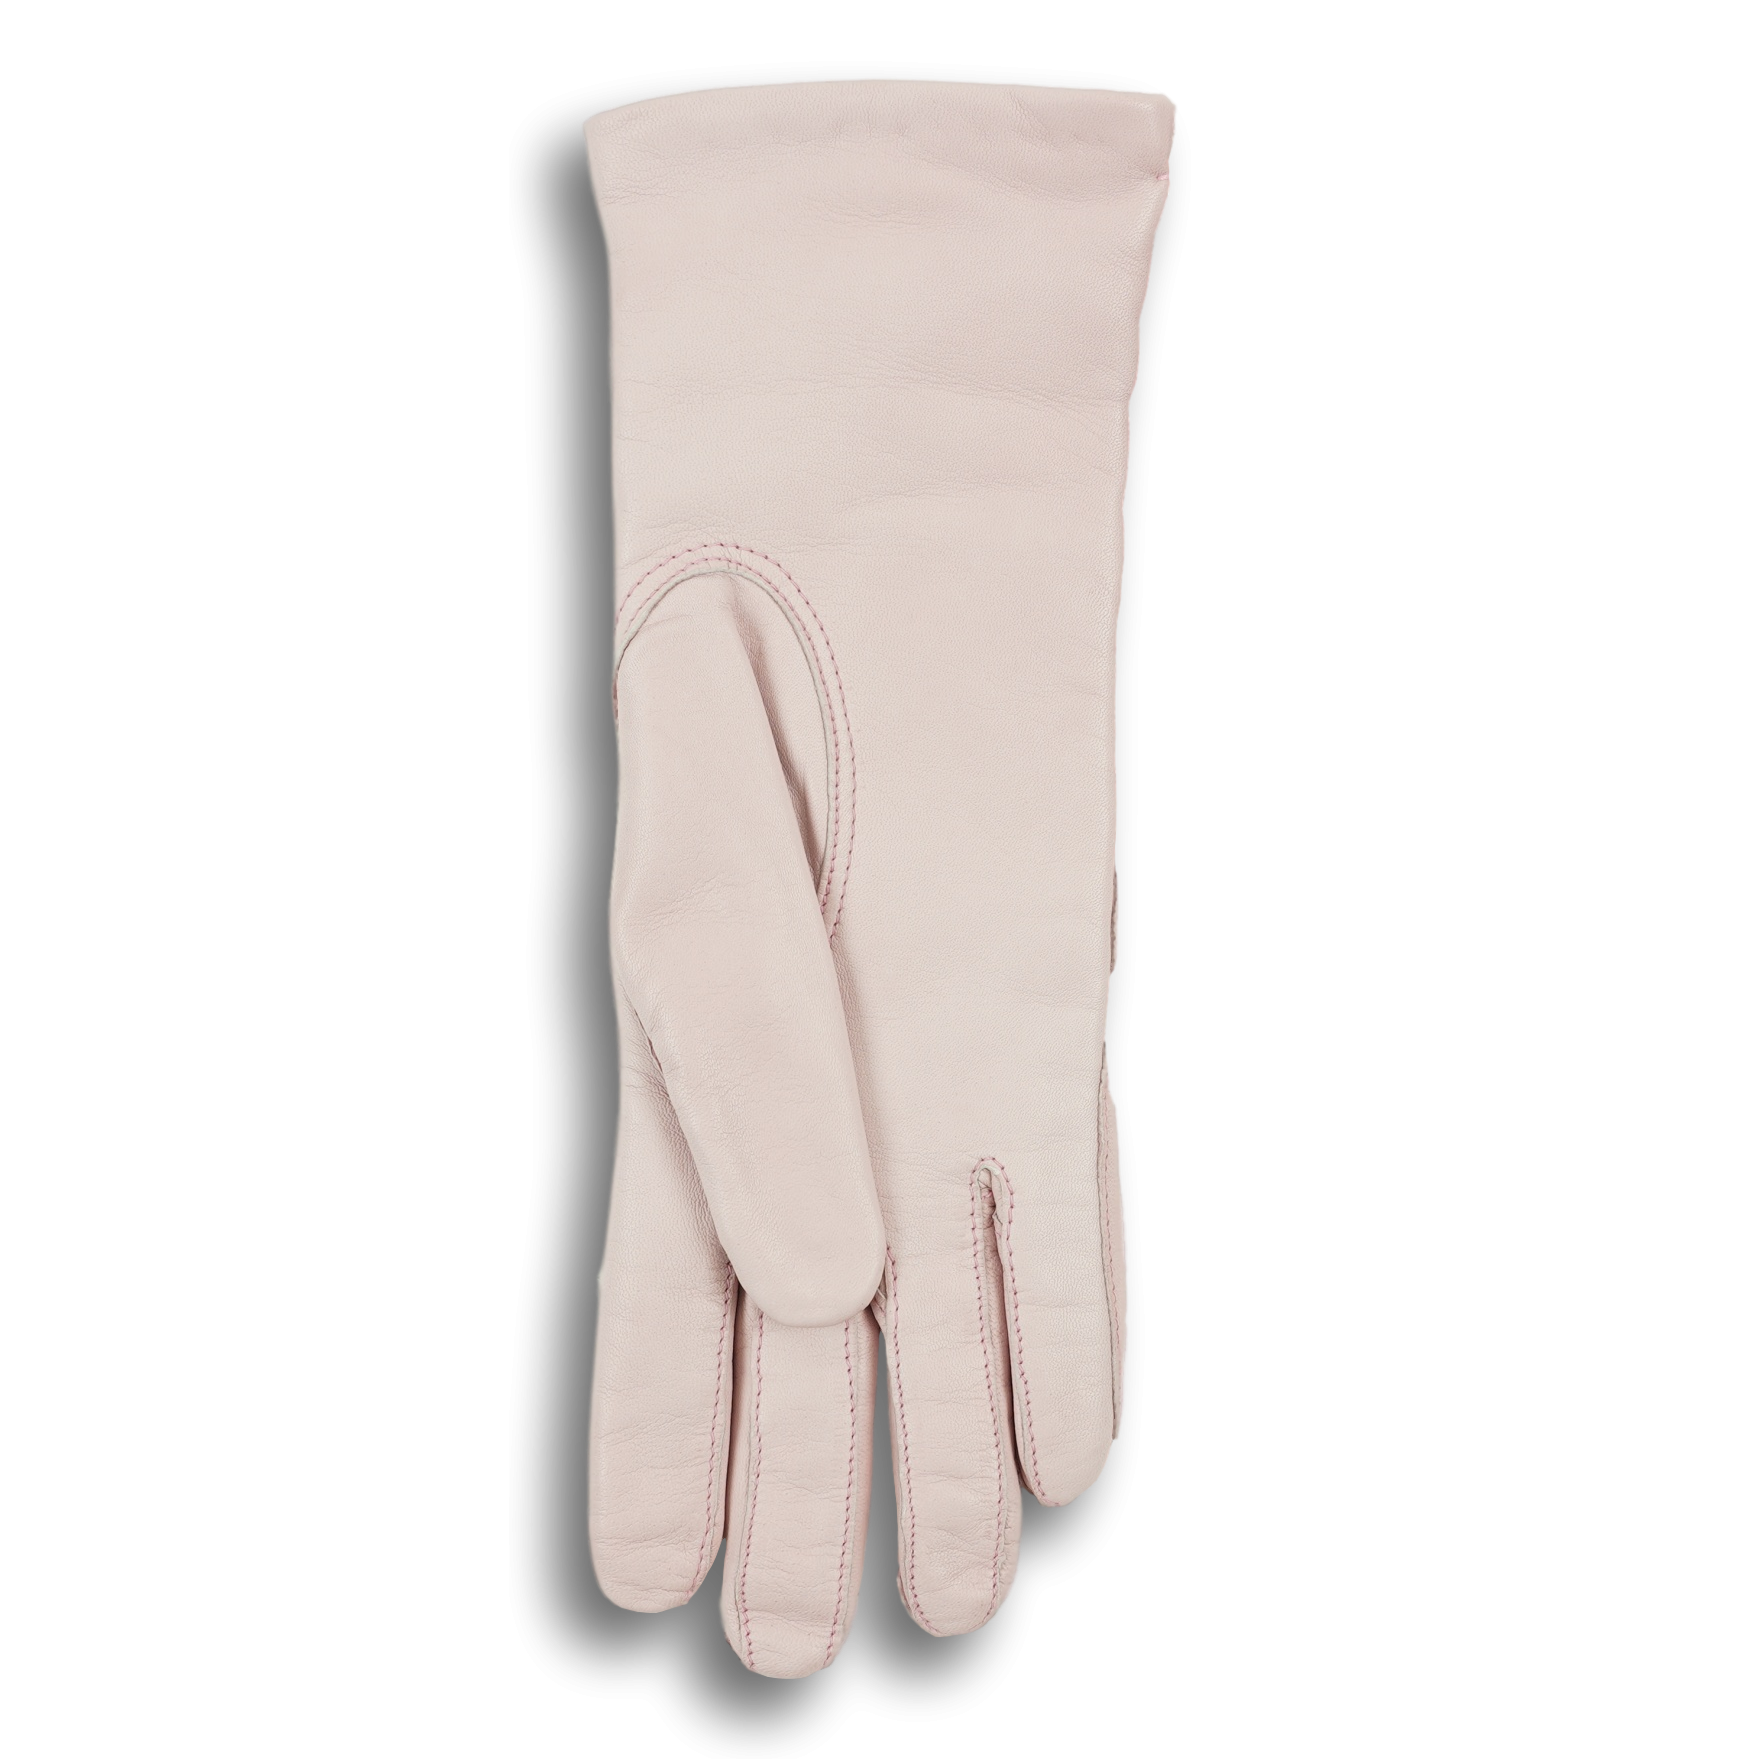 Ladies Handsewn Capeskin Gloves with Cashmere Lining